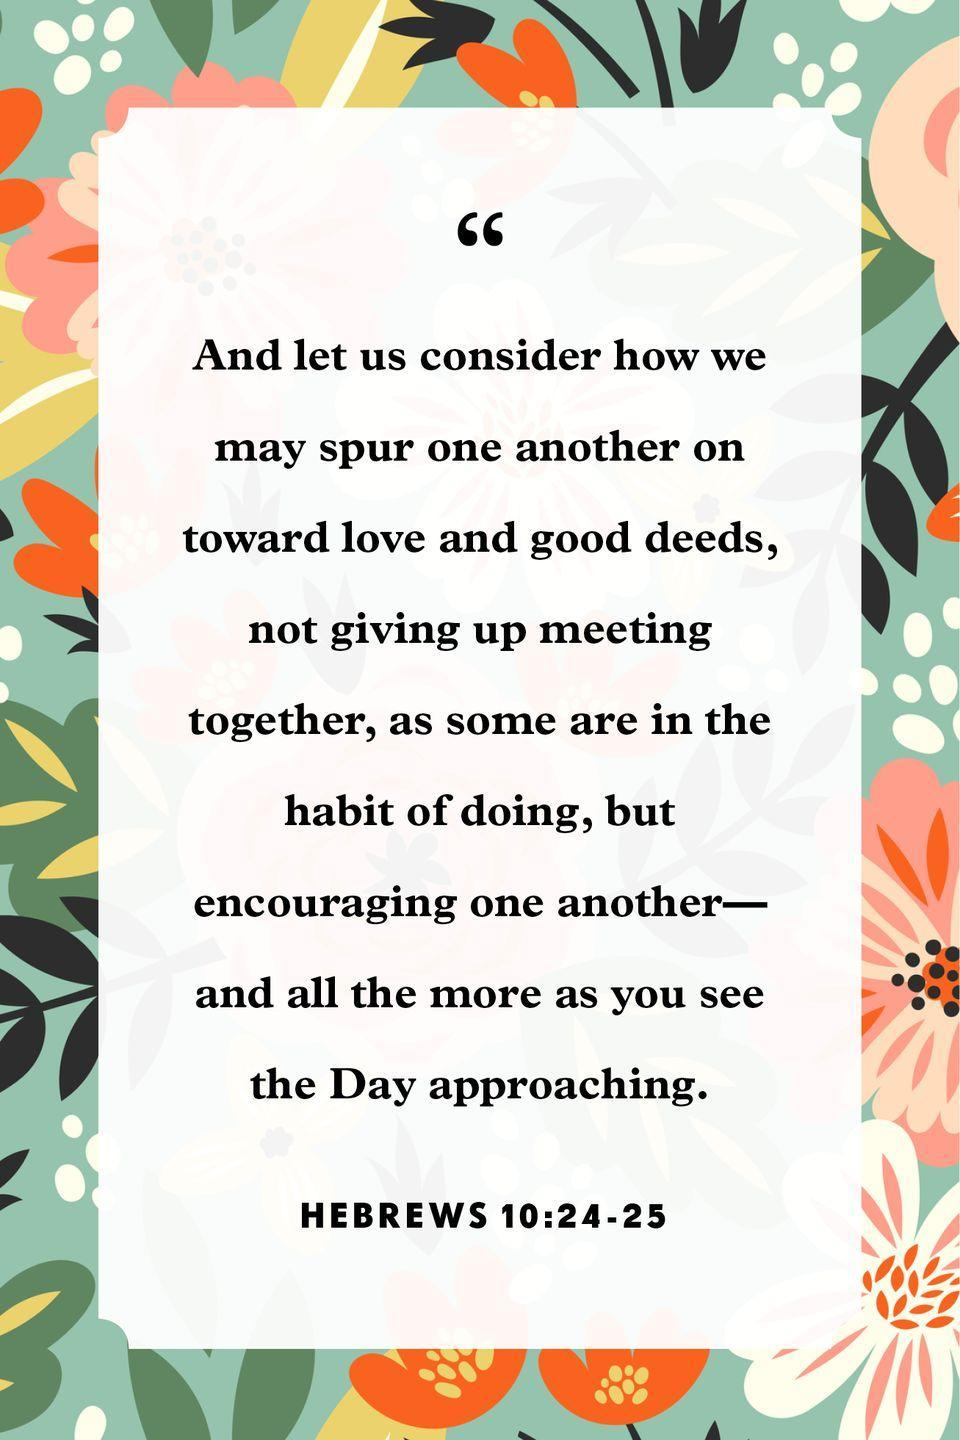 "<p>""And let us consider how we may spur one another on toward love and good deeds, not giving up meeting together, as some are in the habit of doing, but encouraging one another—and all the more as you see the Day approaching.""</p>"